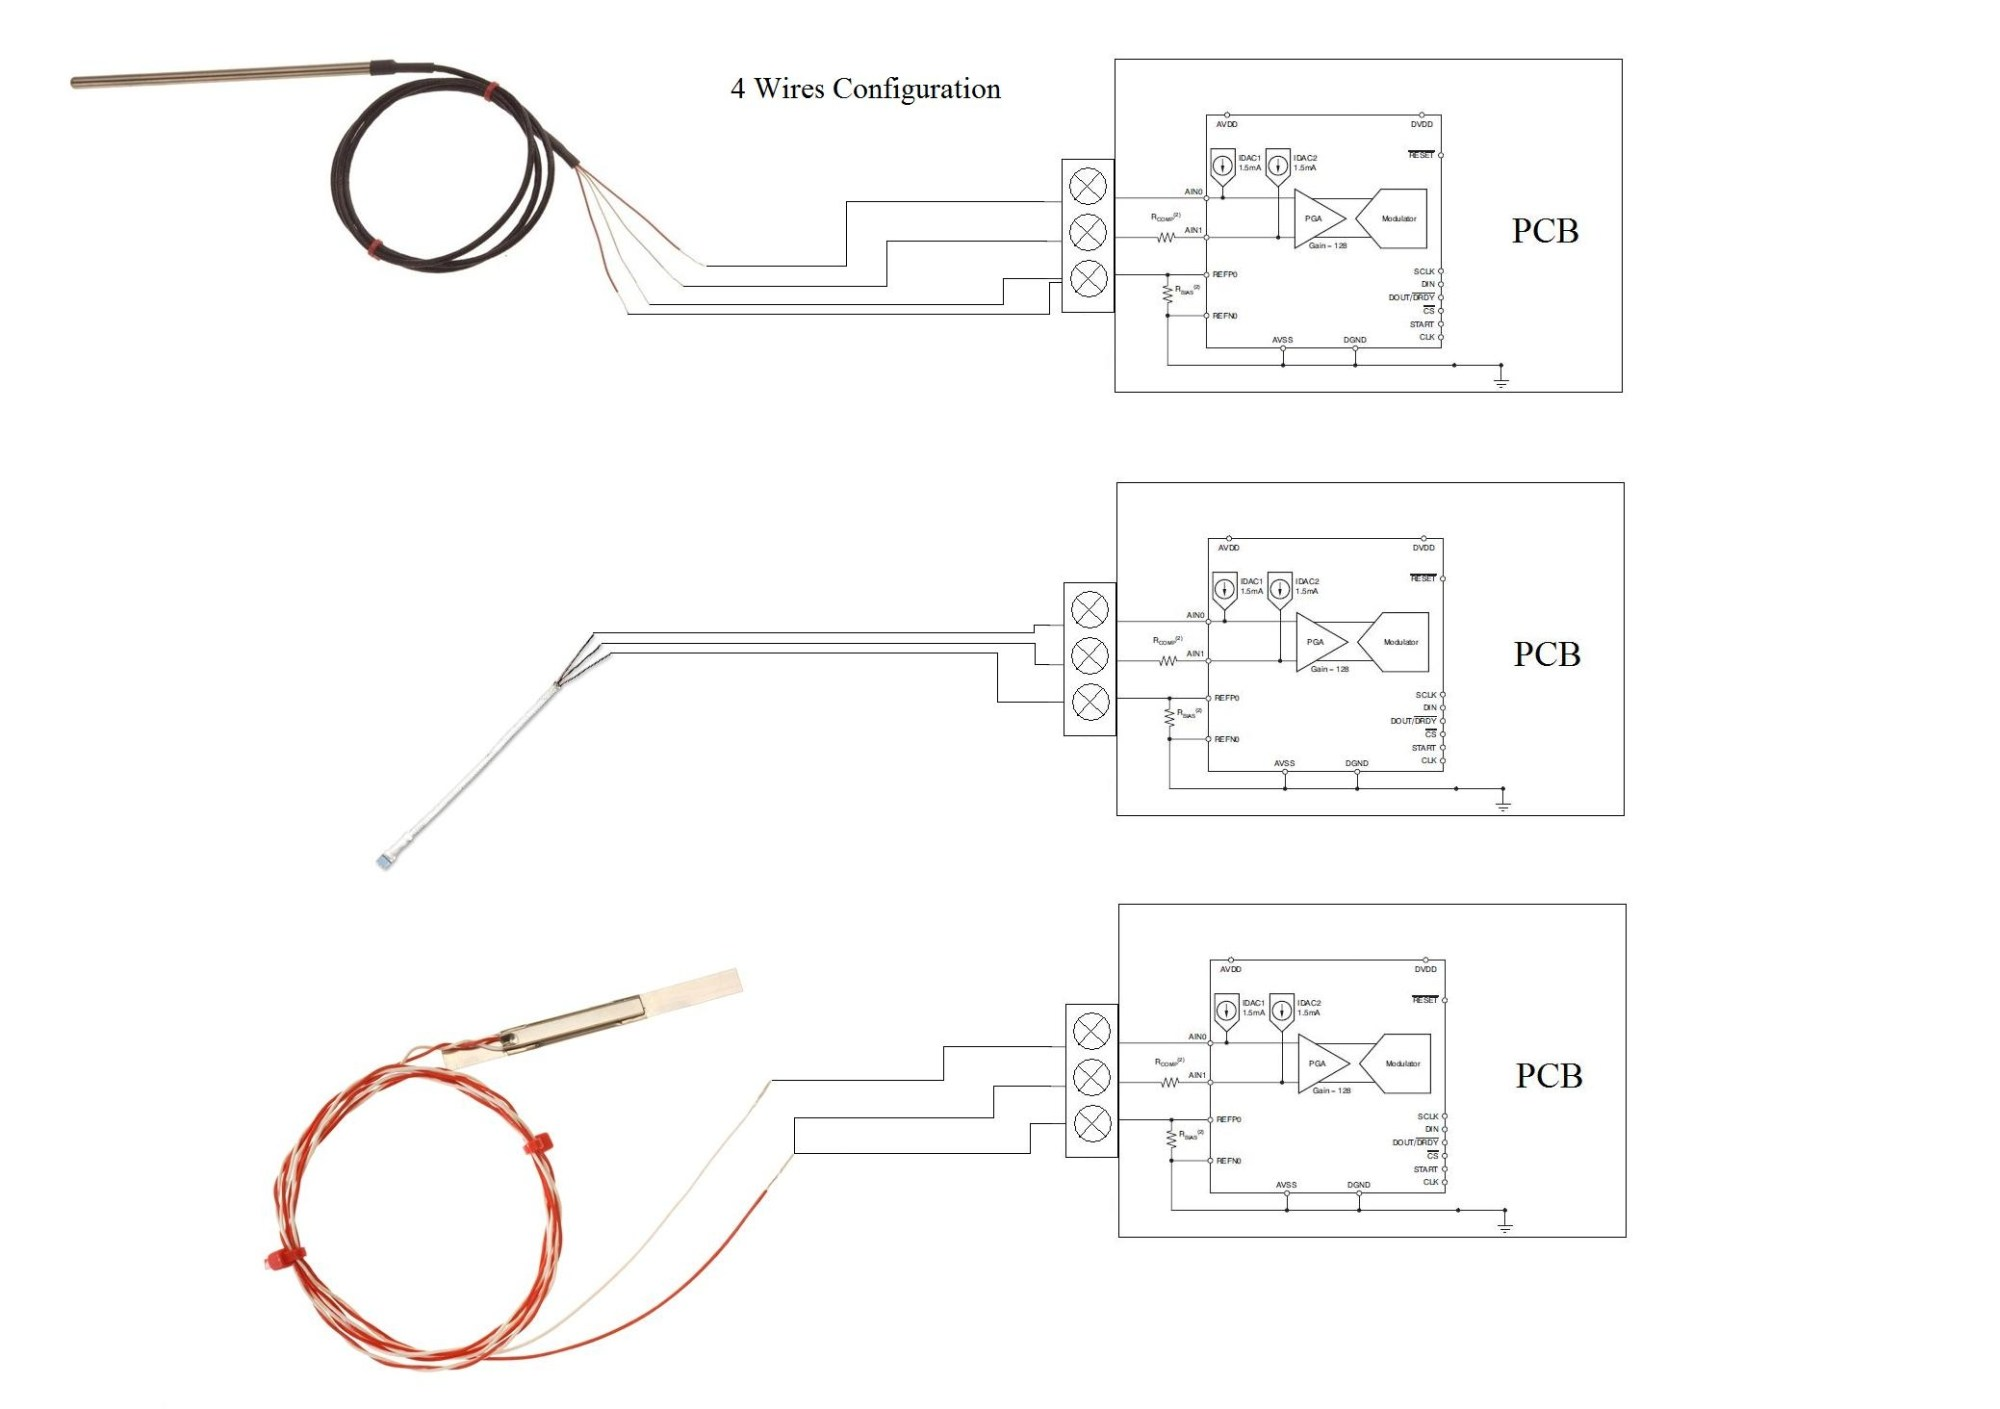 hight resolution of 3 wire rtd diagram cad wiring diagram today positive negative diagram 3 wire rtd